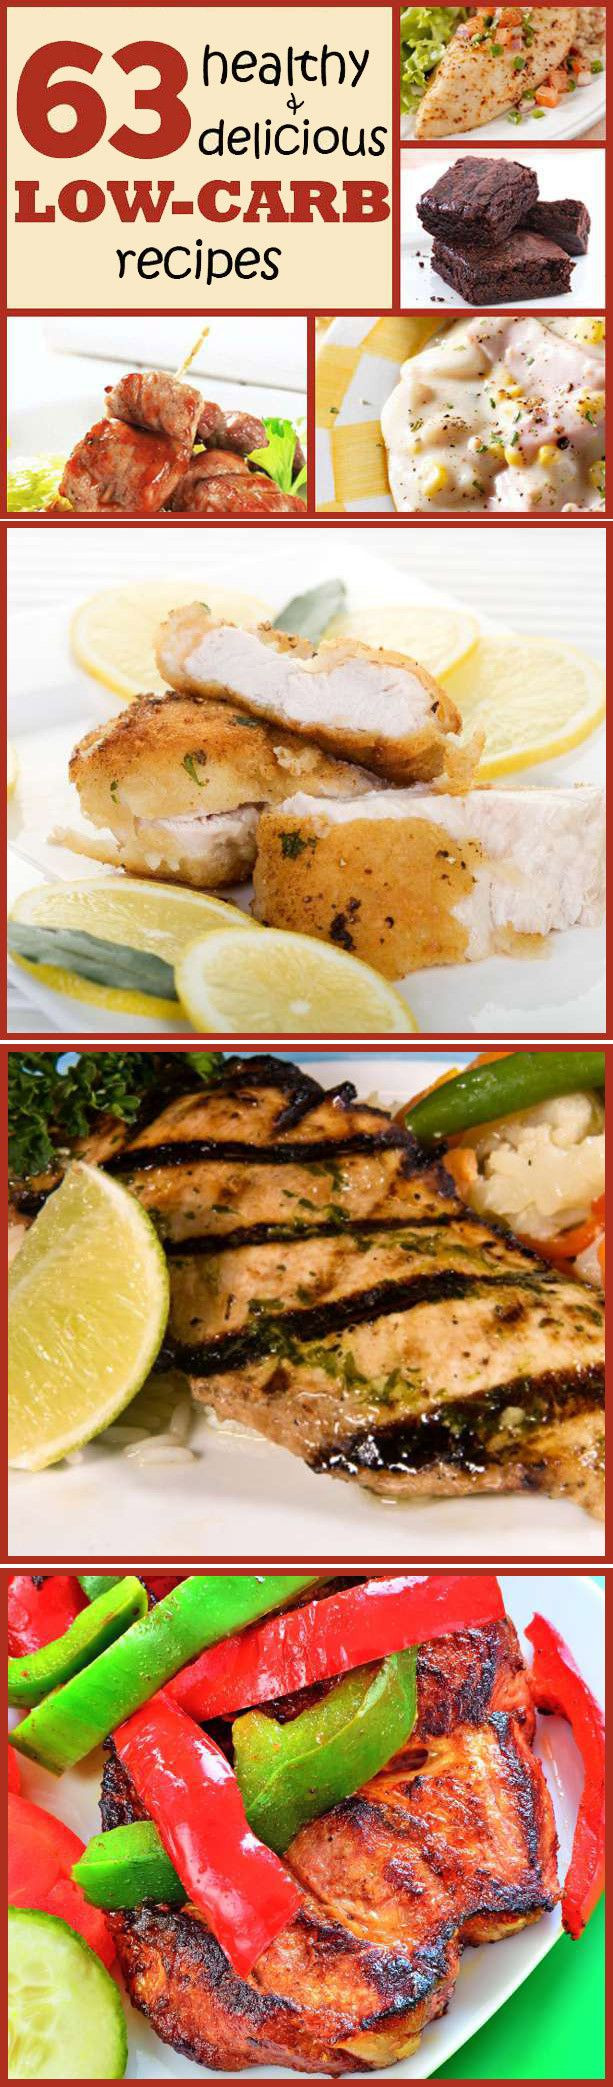 Low Carb Heart Healthy Recipes  1000 images about Atkins Diet recipes on Pinterest